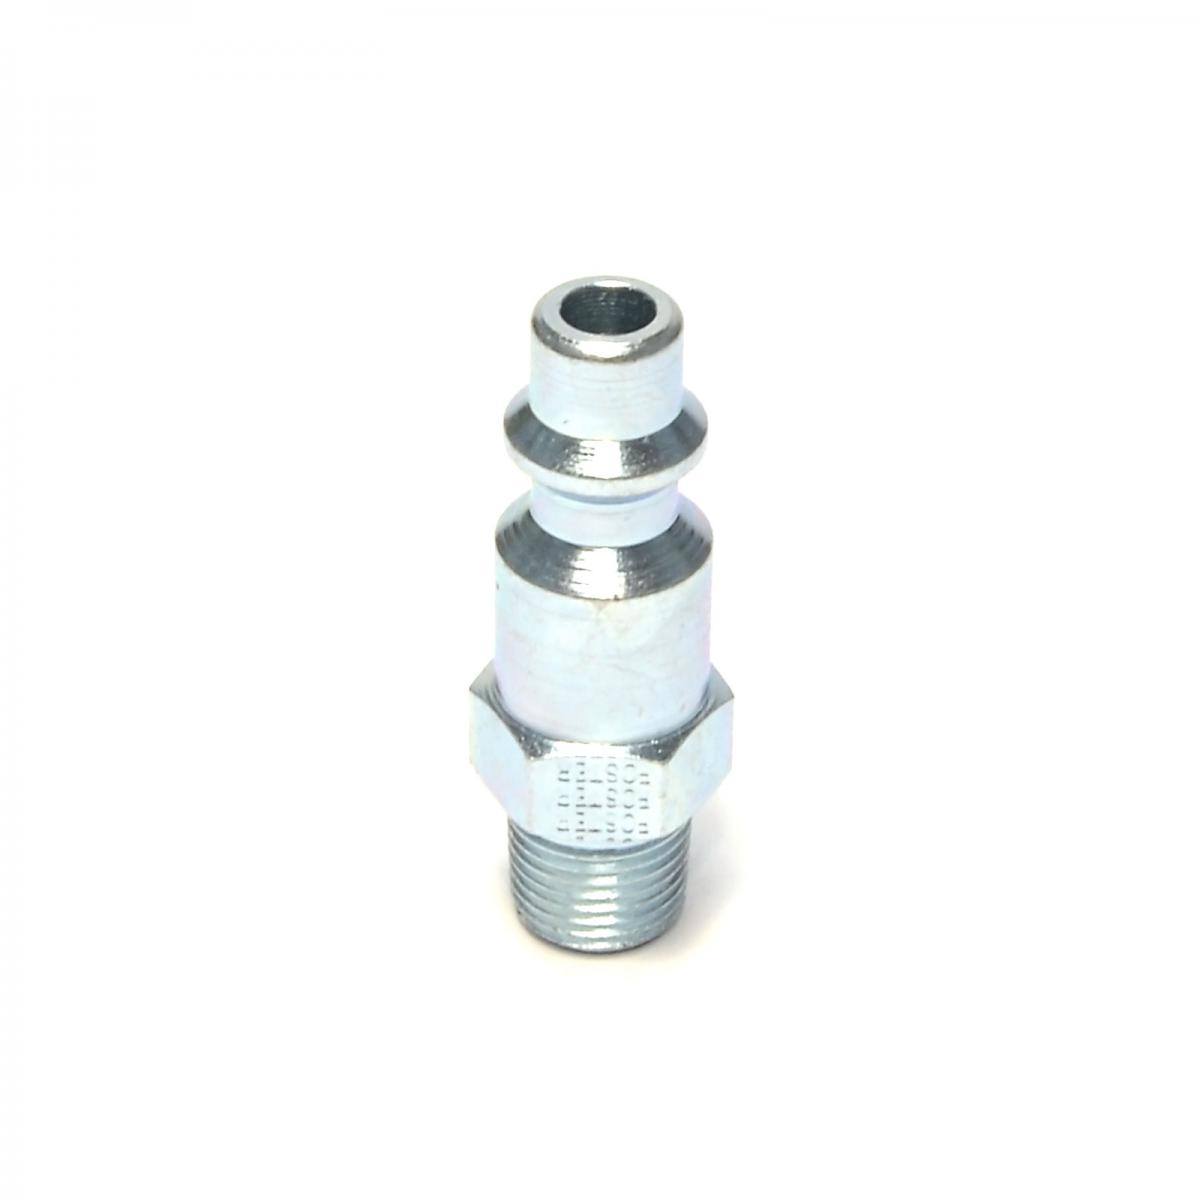 Quick Connect Air Fittings >> Details About 1 8 Npt Pneumatic Air Compressor Hose Male Quick Connect Fitting Coupler Plug